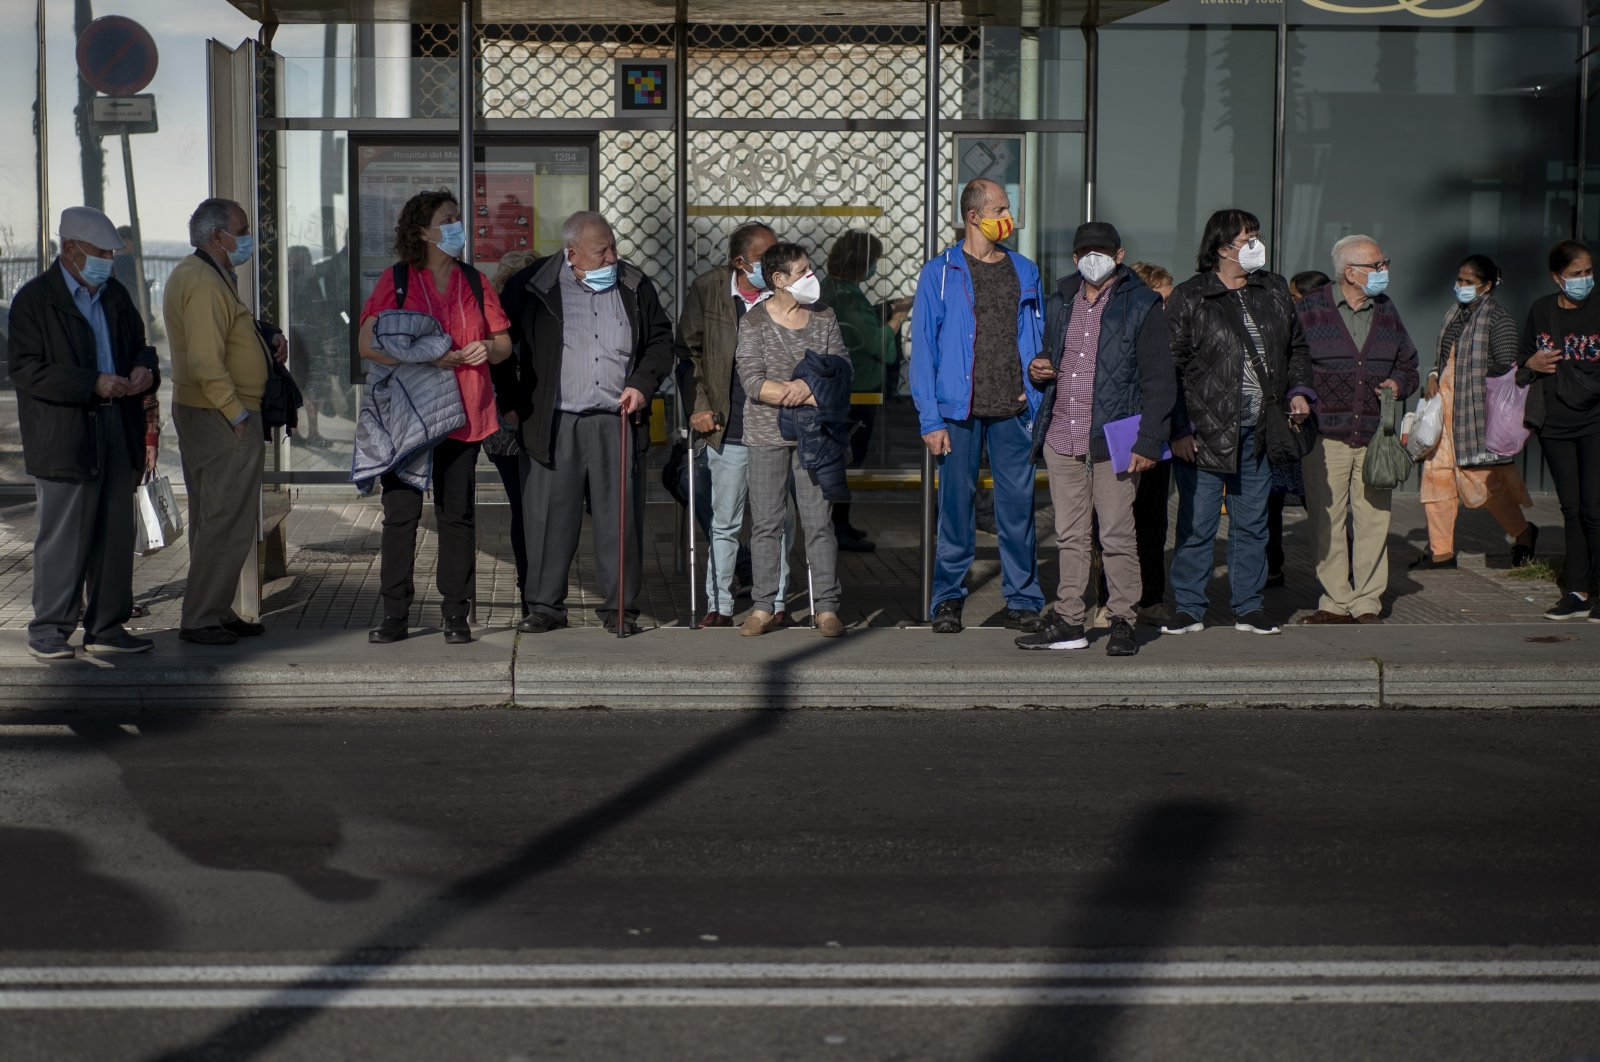 People wait for a bus in Barcelona, Spain, Oct. 23, 2020. (AP Photo)